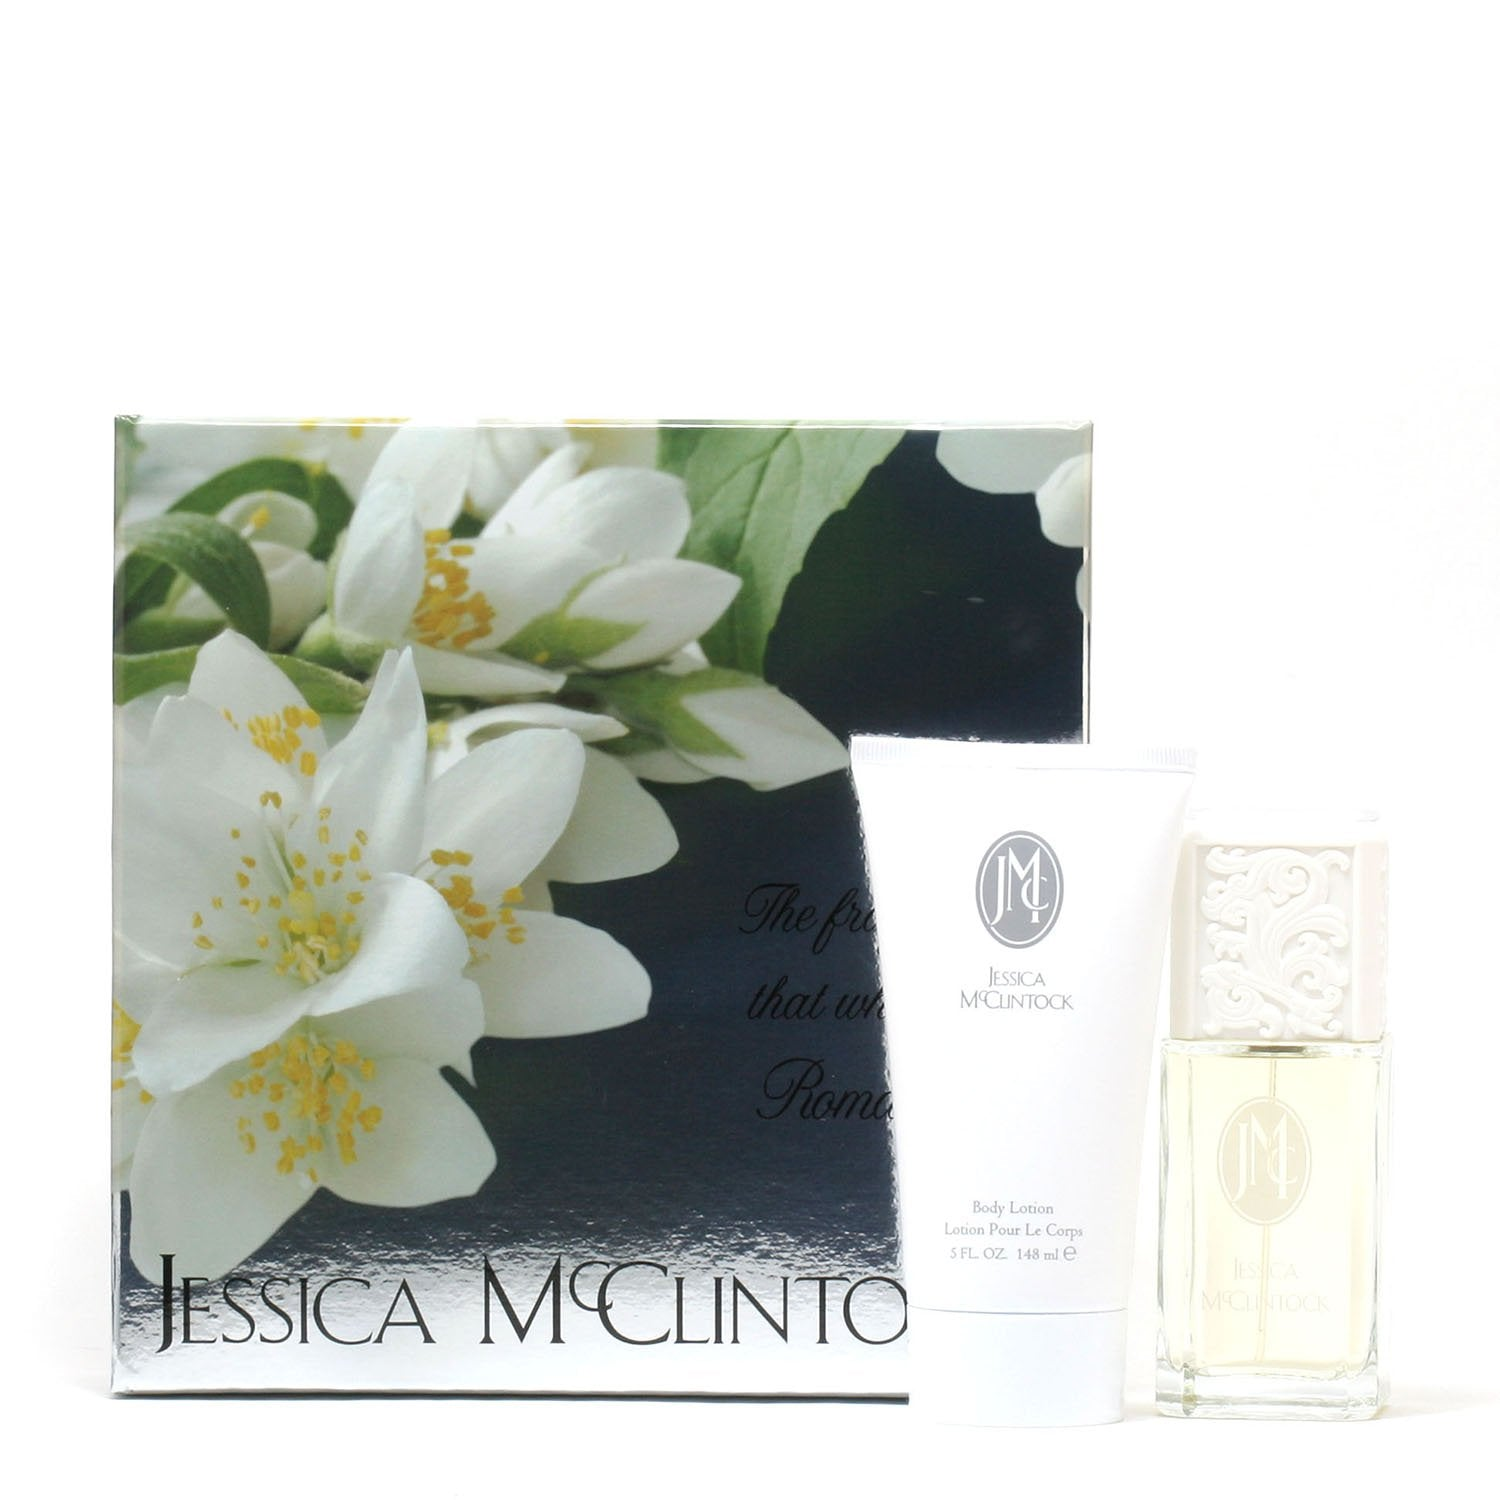 Perfume Sets - JESSICA MCCLINTOCK FOR WOMEN - GIFT SET